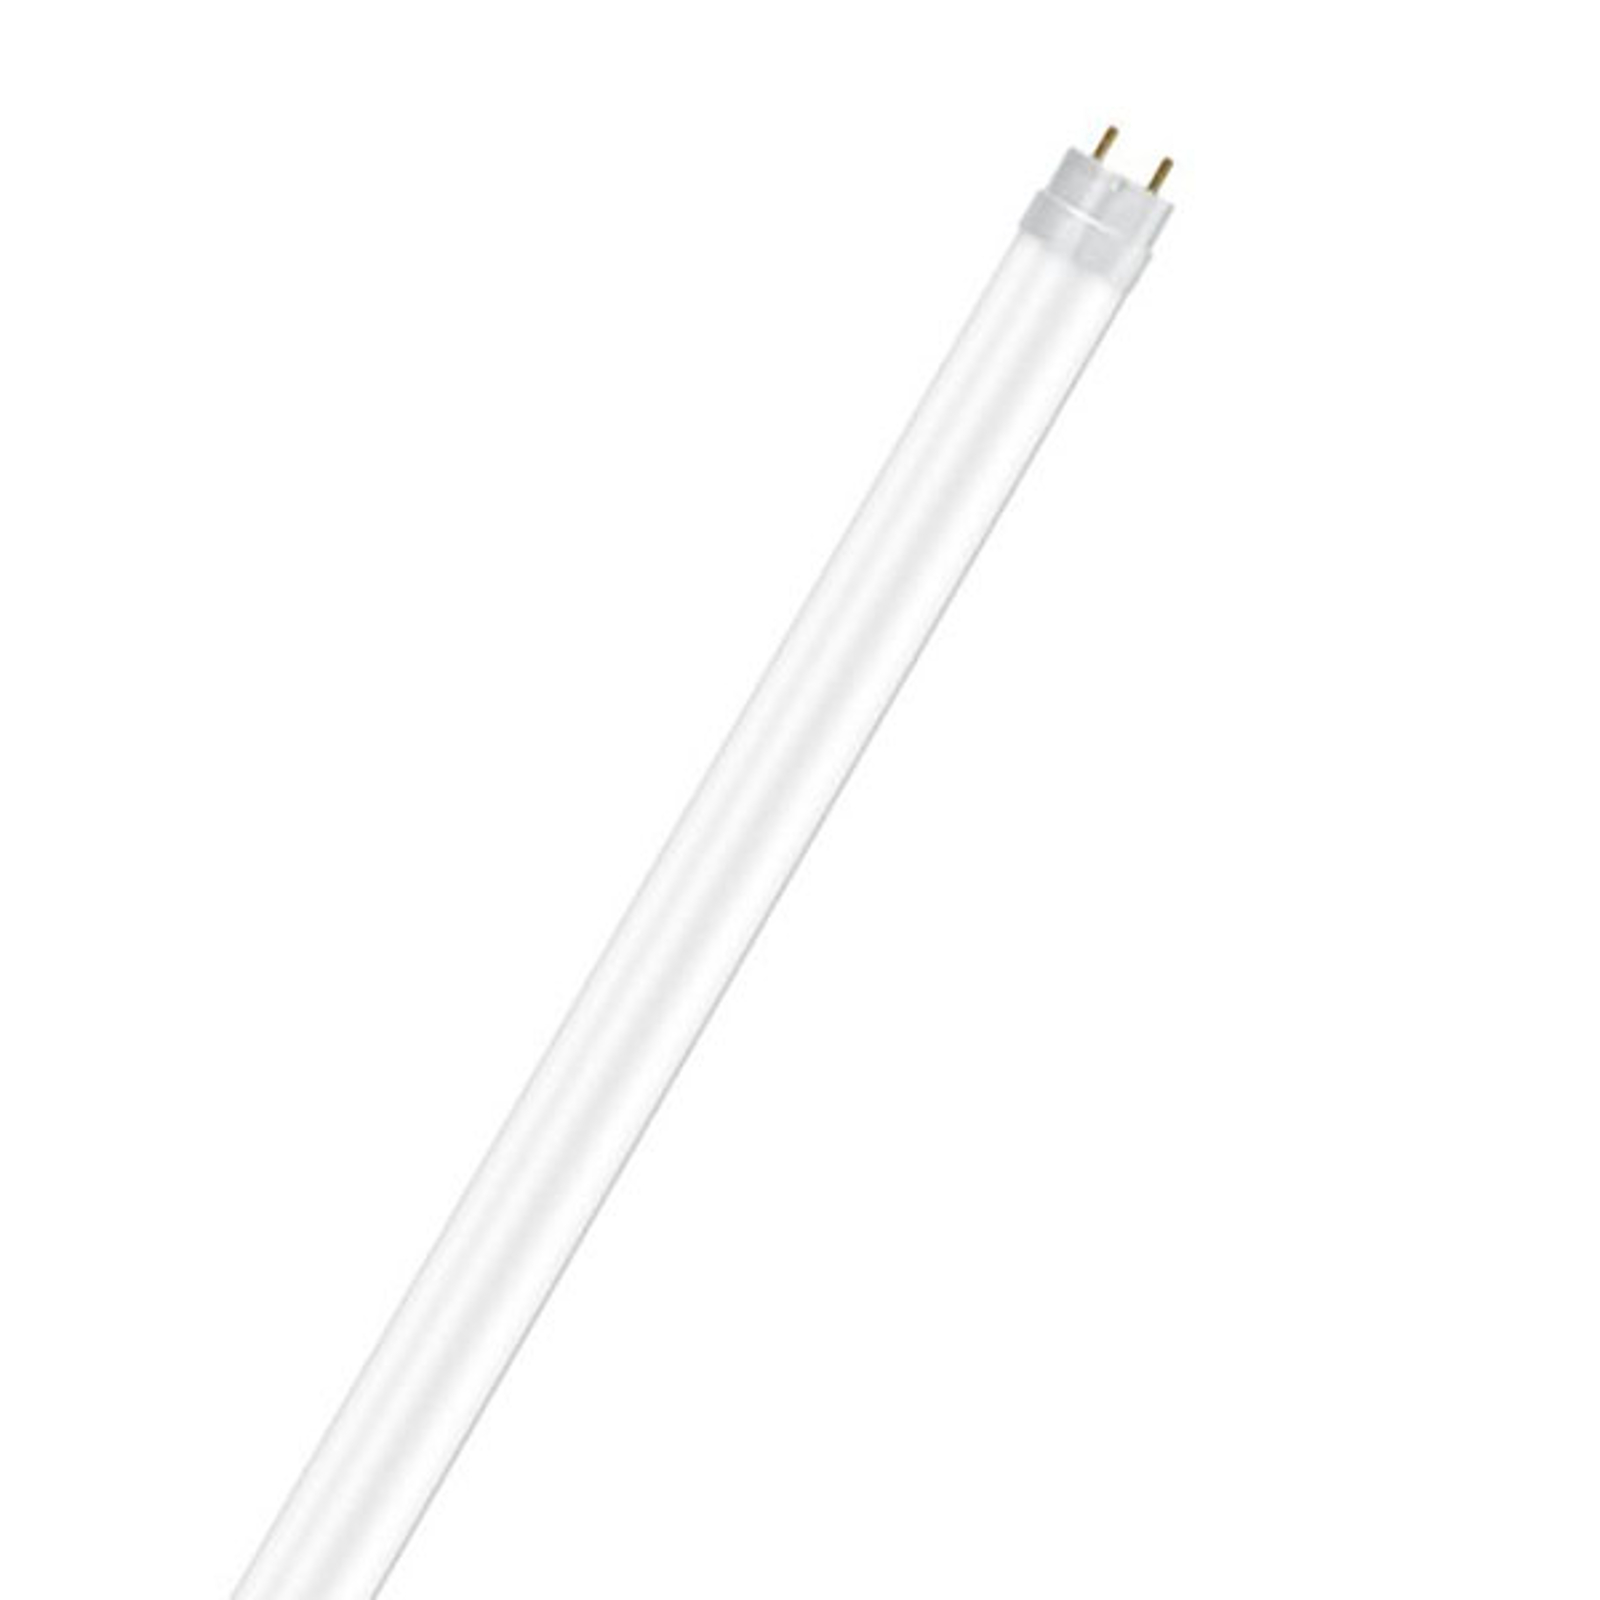 OSRAM LED tubo G13 150cm SubstiTUBE 20W 4.000K